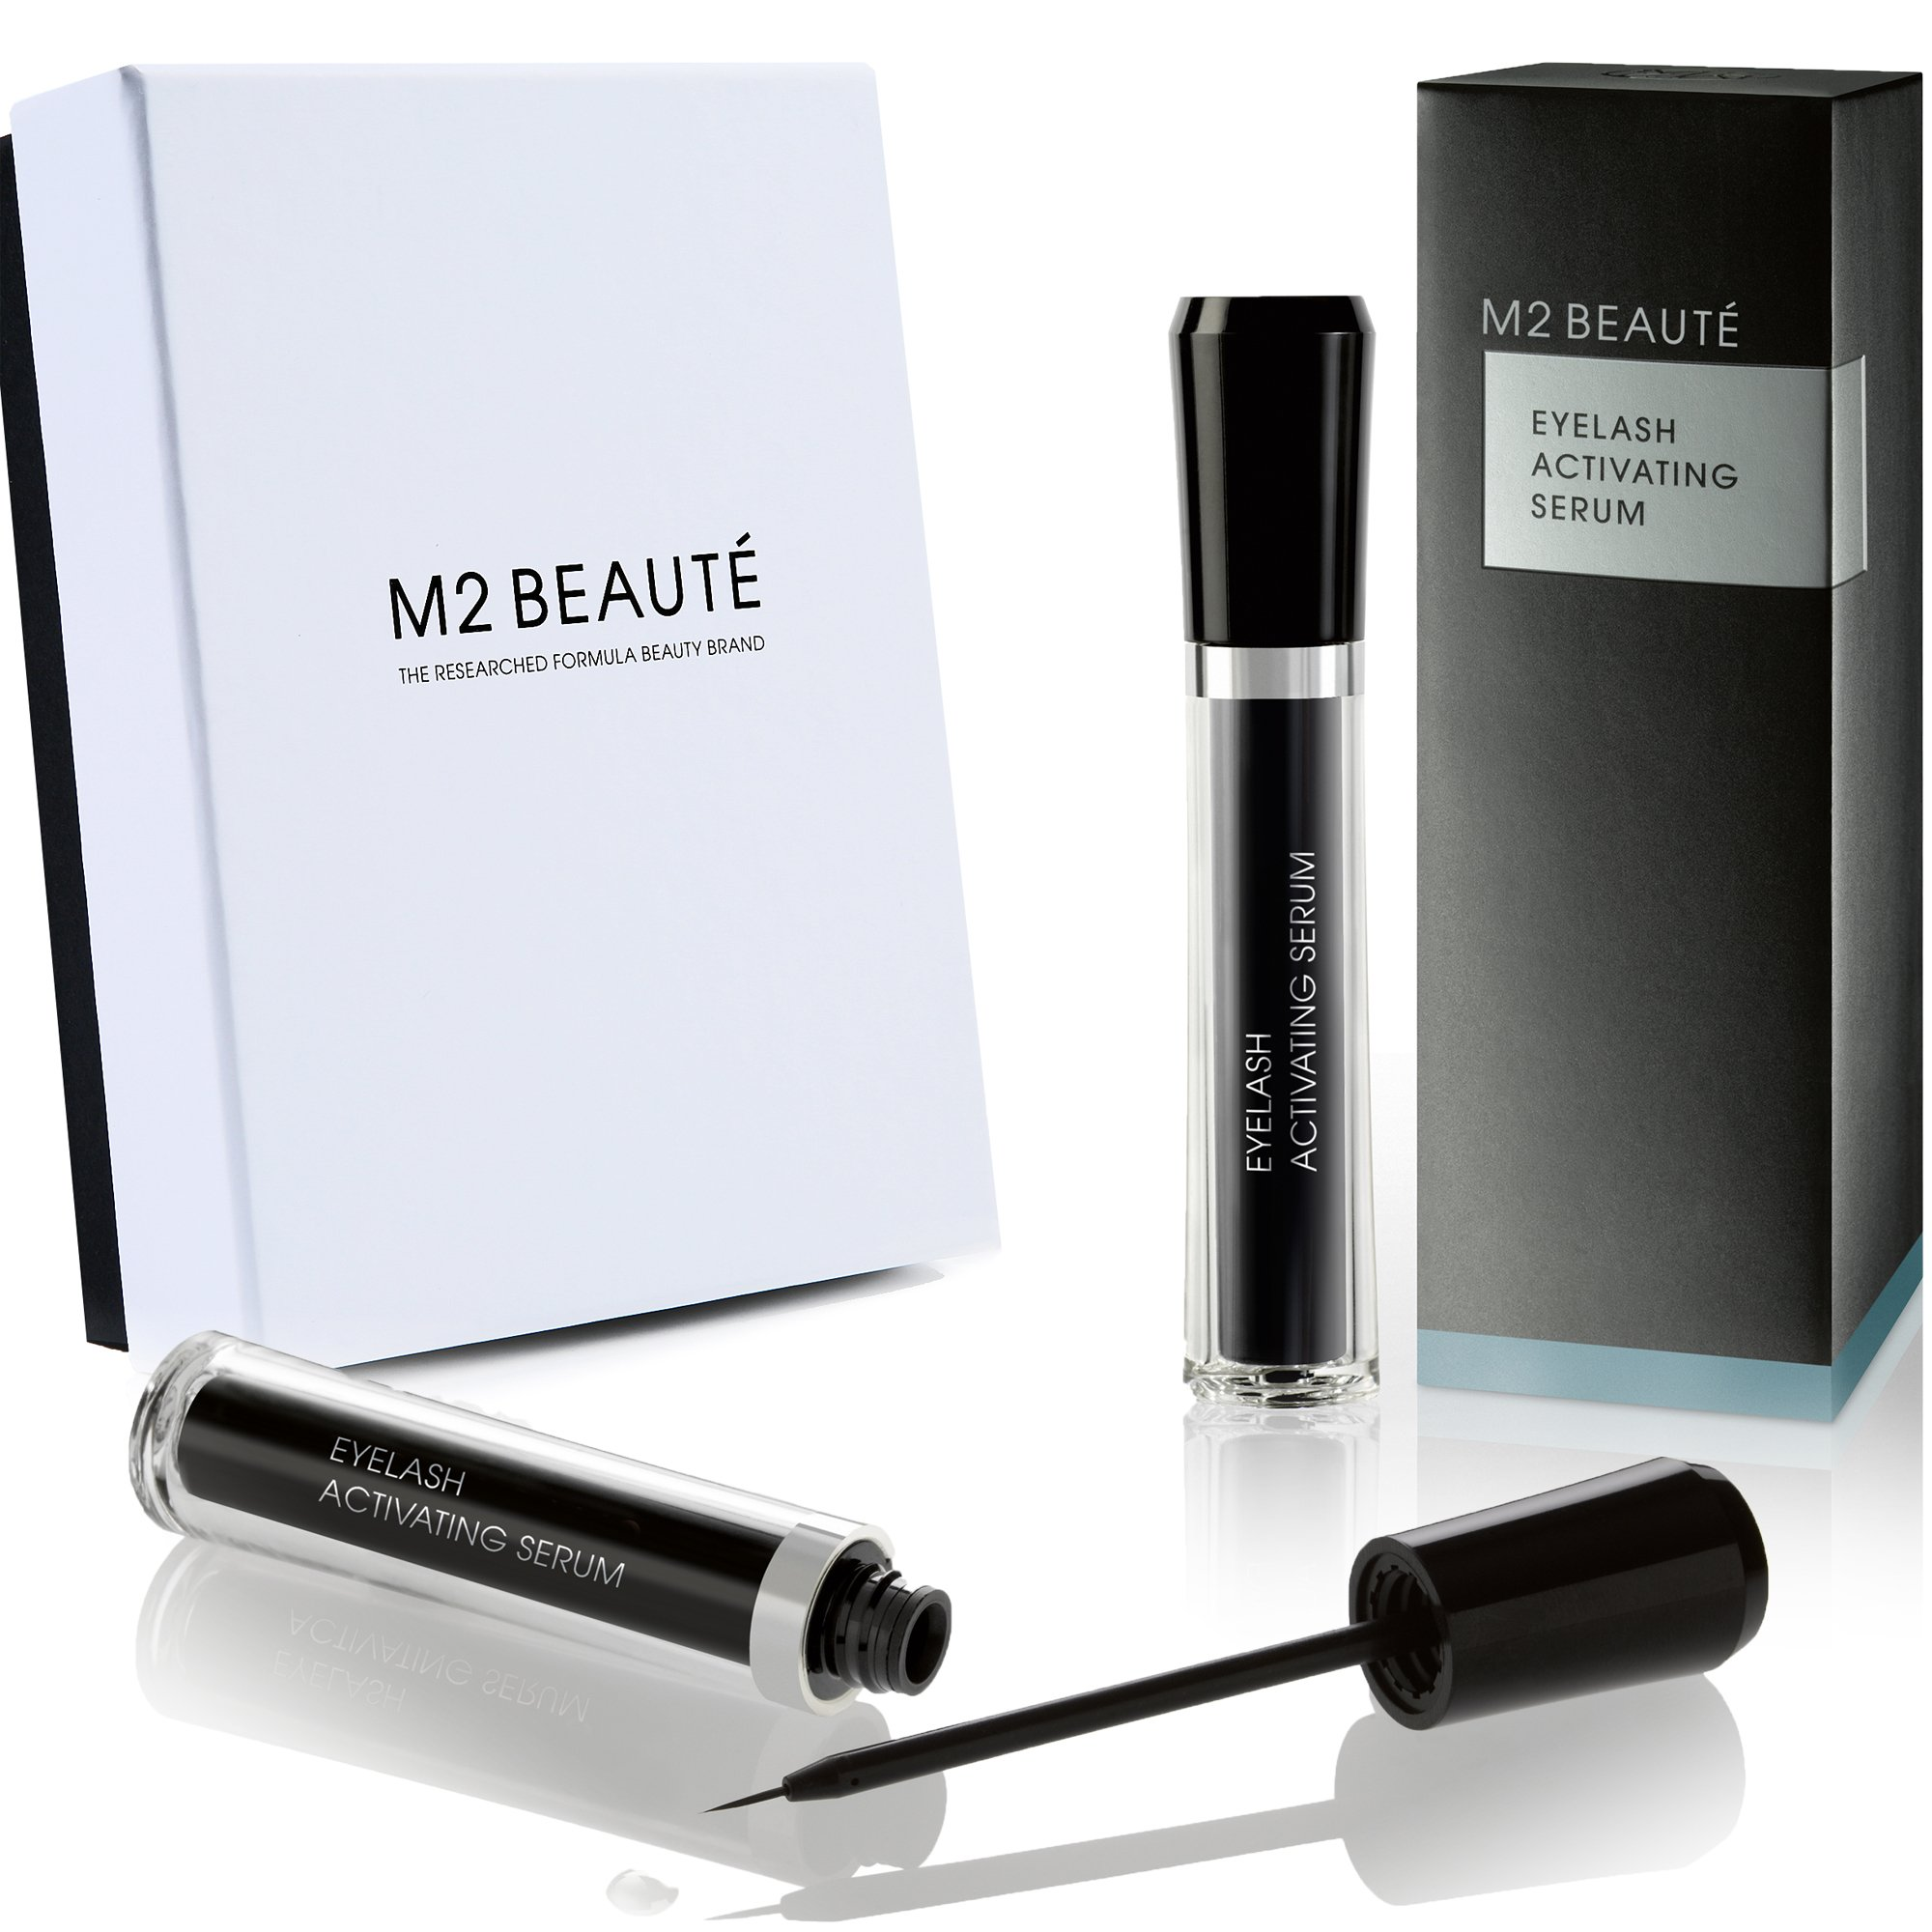 M2 BEAUTE Eyelash Activating Serum 5 Milliliter and M2 BEAUTE Box, Dermatologist Tested Product, Highest German Quality Professional Eyelash Serum for Growing Natural Lashes by M2Beaute